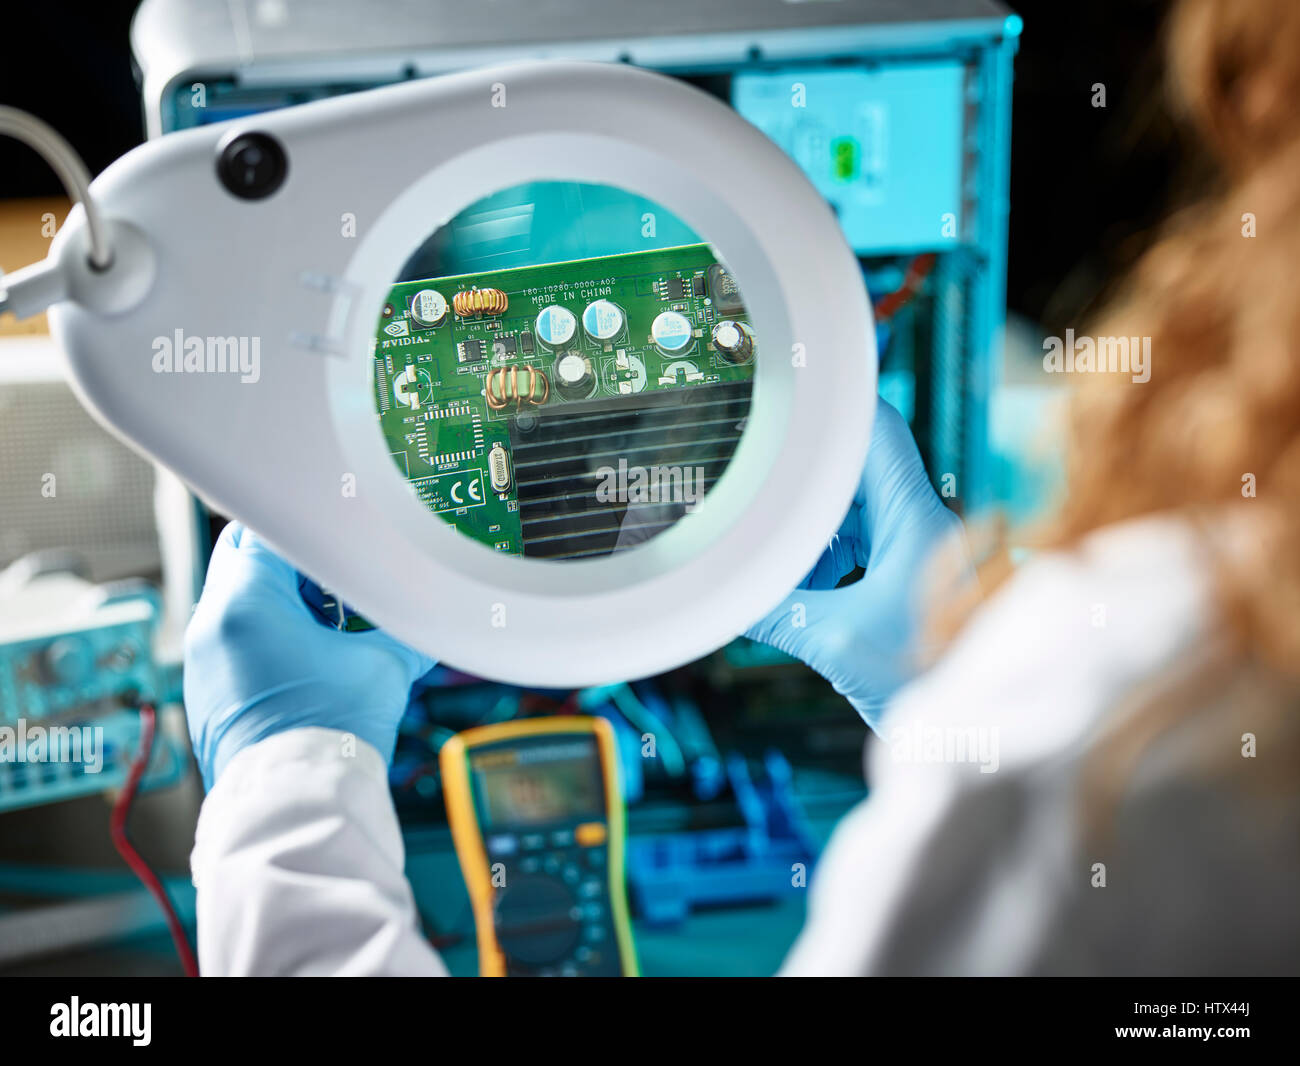 Engineer with white lab coat examining graphics card, looking through magnifying glasses to board, Austria - Stock Image